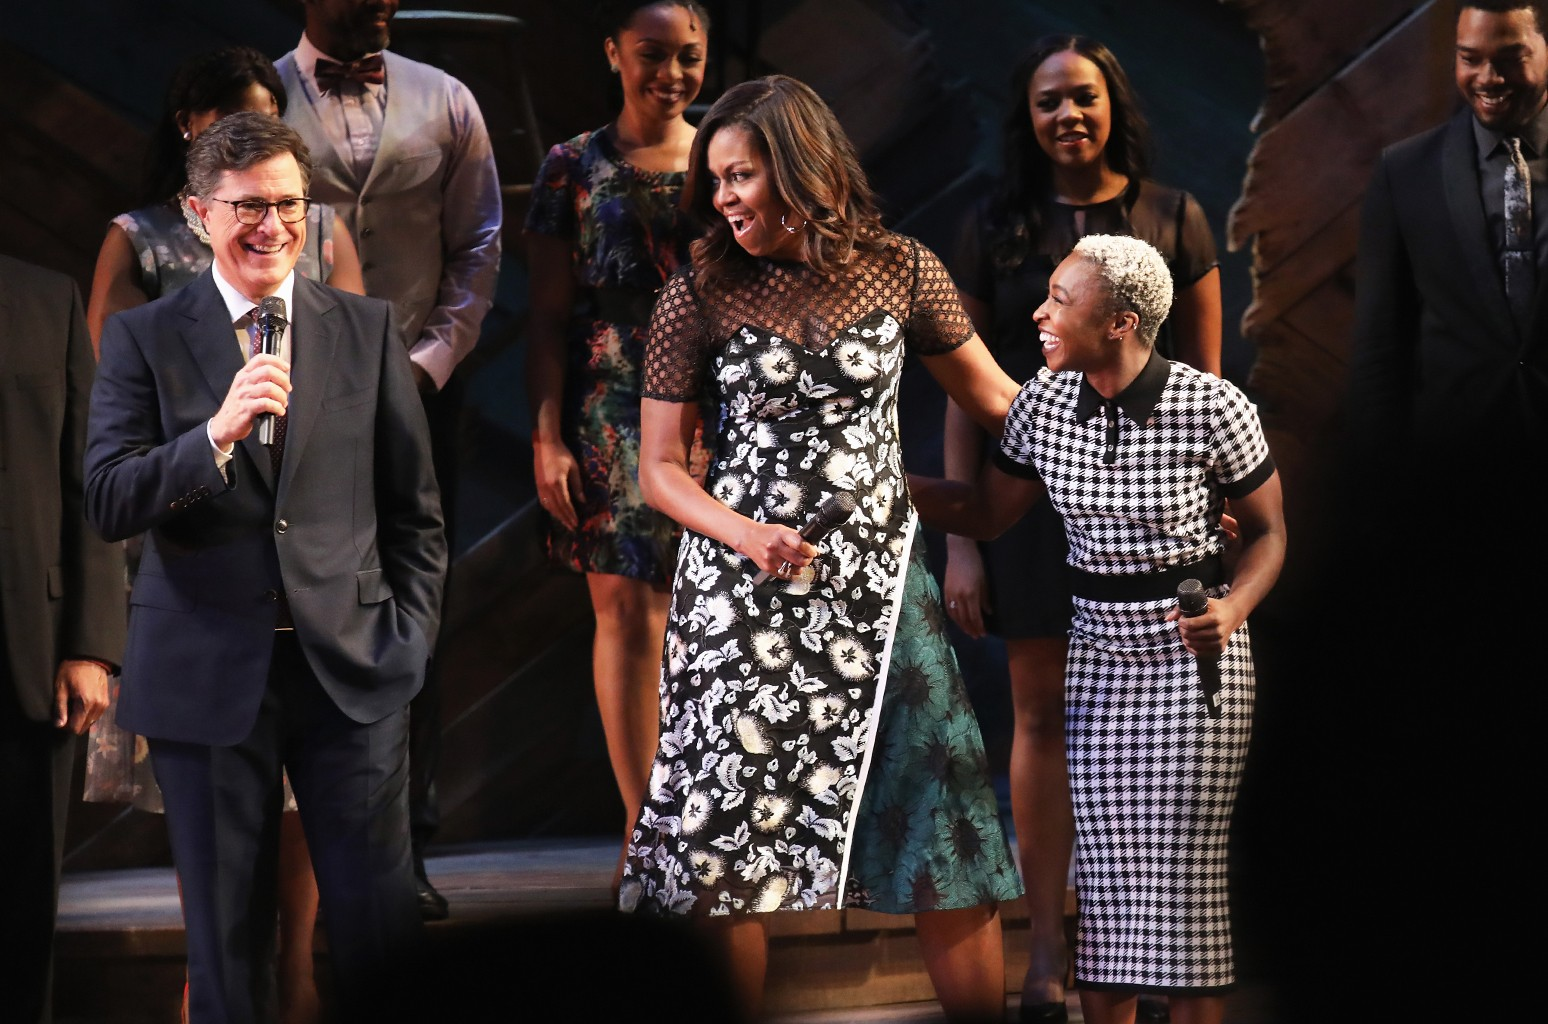 U.S. First Lady Michelle Obama and The Color Purple star Cyntha Erivo listen as Late Show host Stephen Colbert speaks to guests at Broadway's Jacobs Theater on Sept.19, 2016 in New York City.